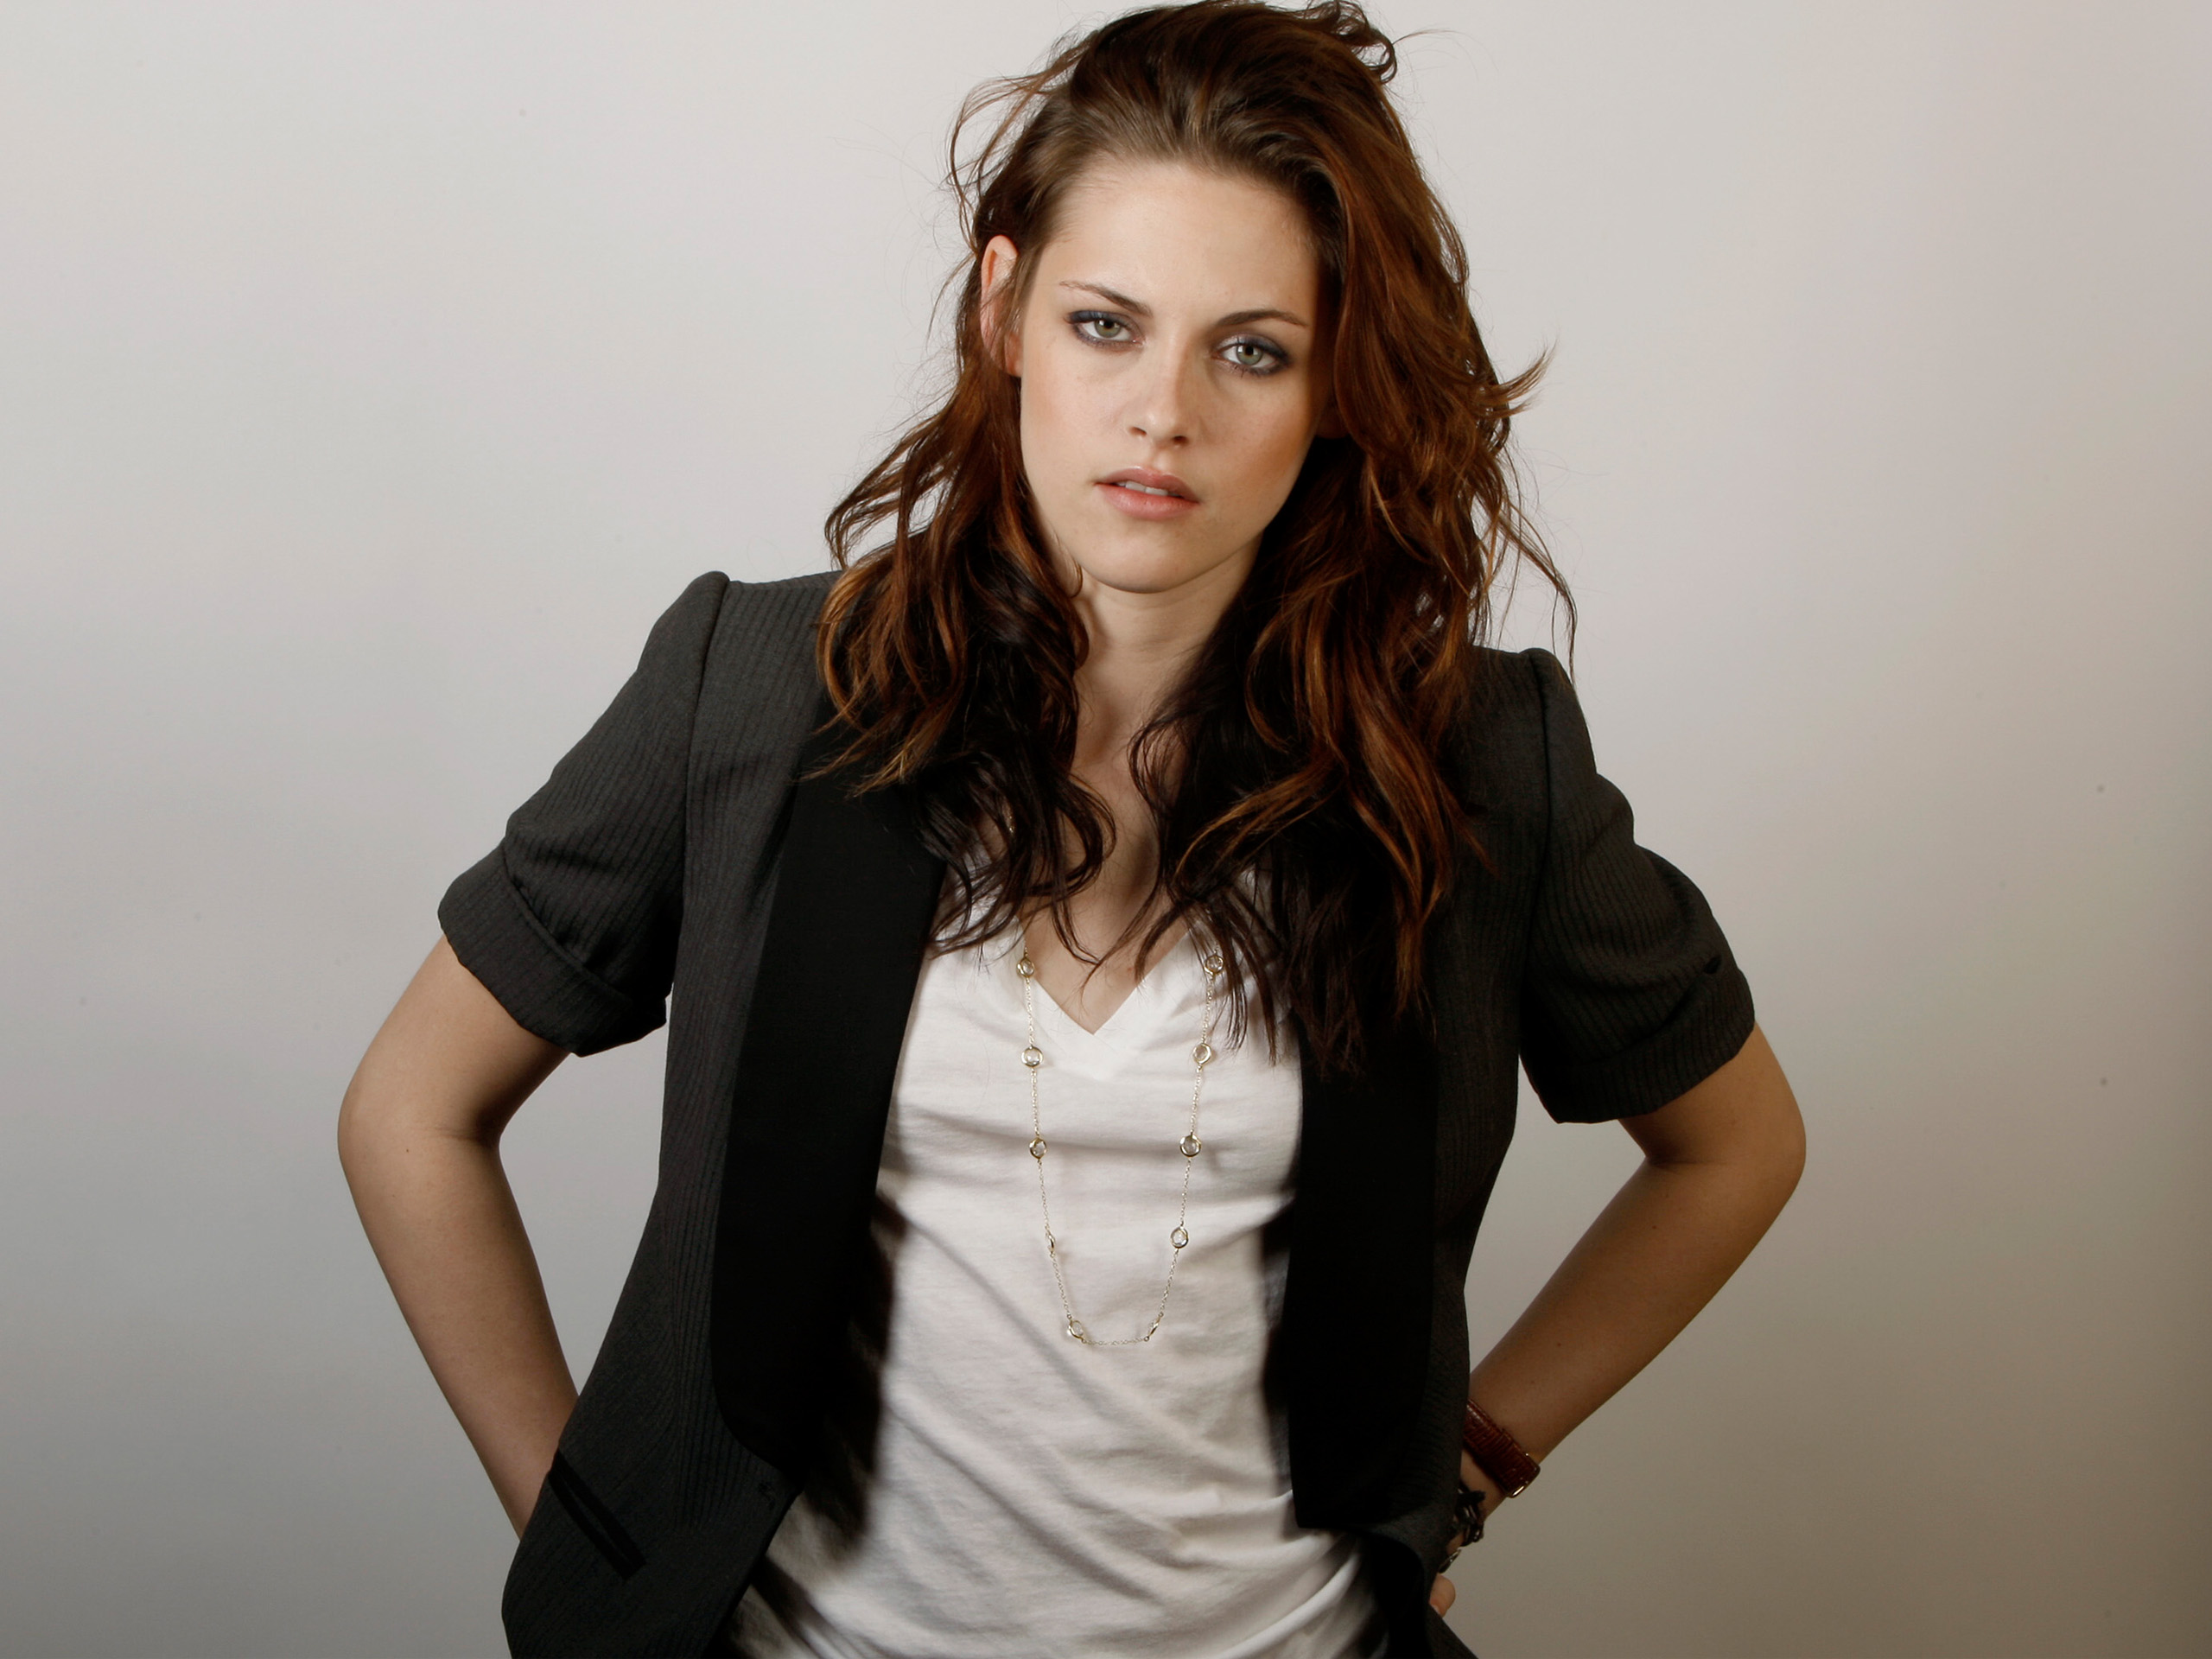 Kristen stewart wallpapers high resolution and quality for The stewarts